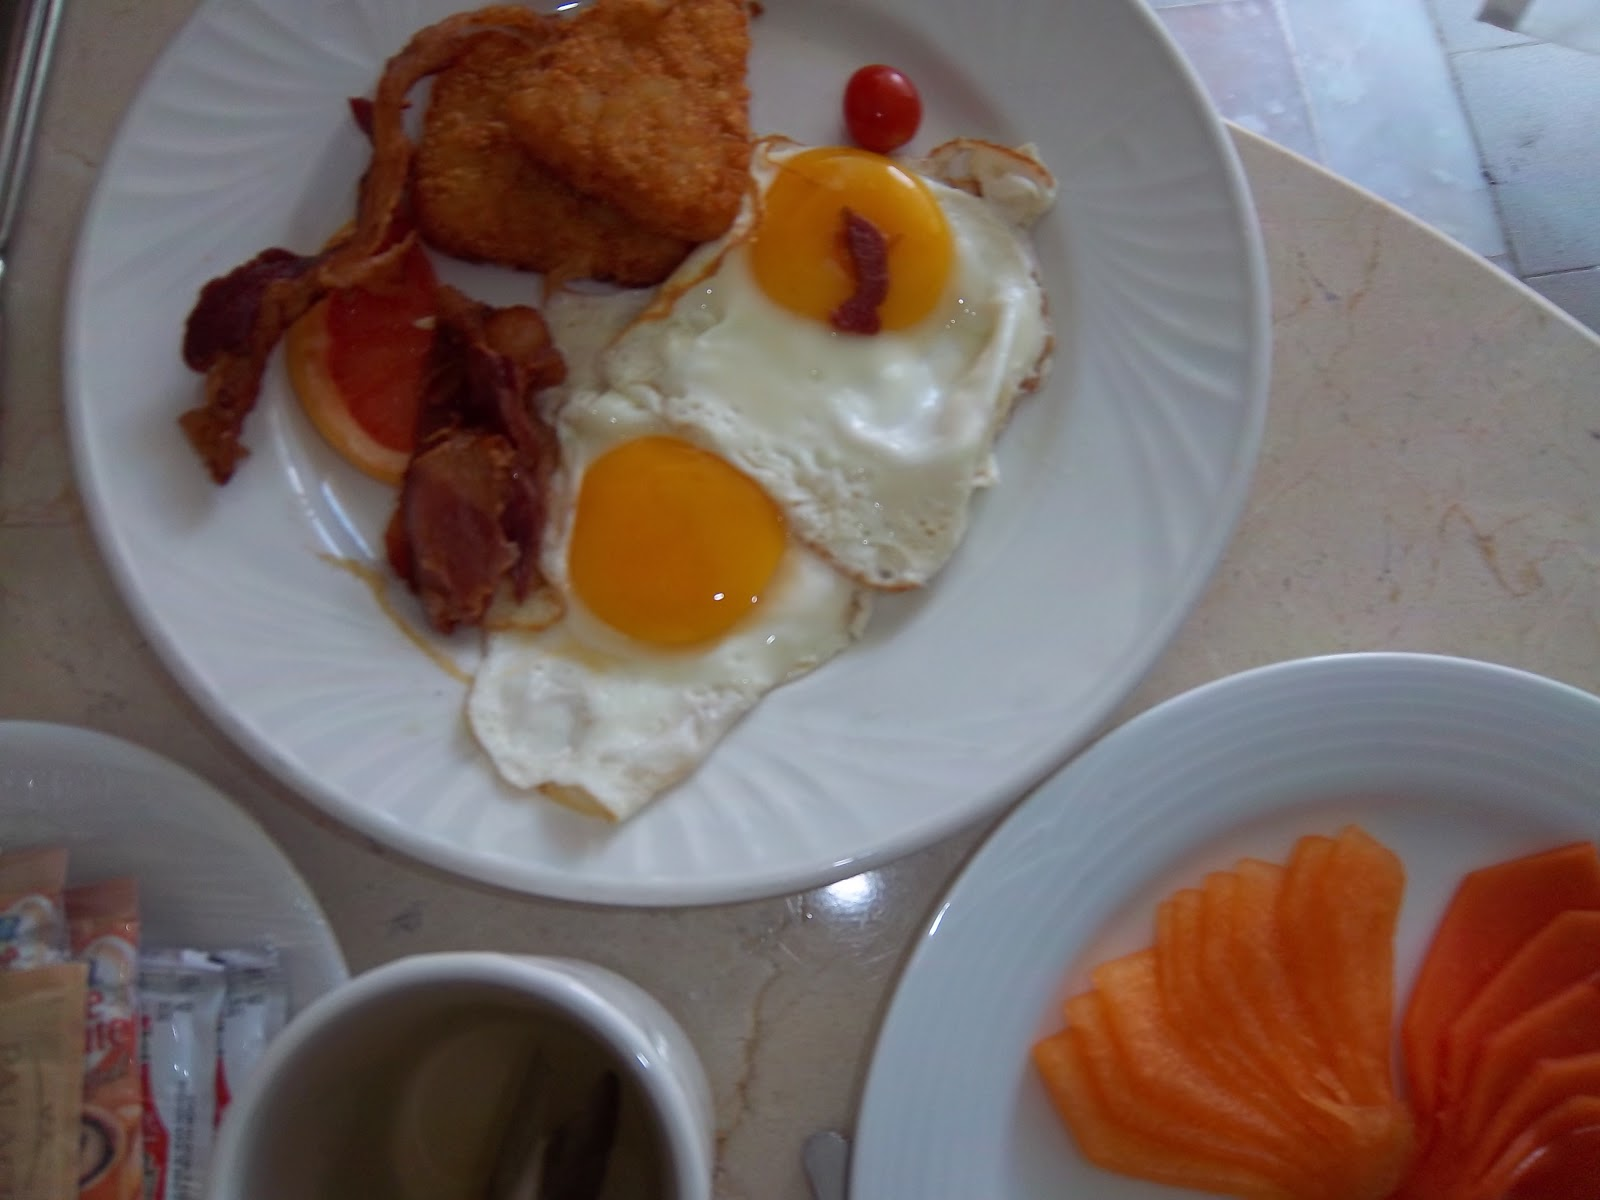 Fish, Bacon and Eggs with Fruit